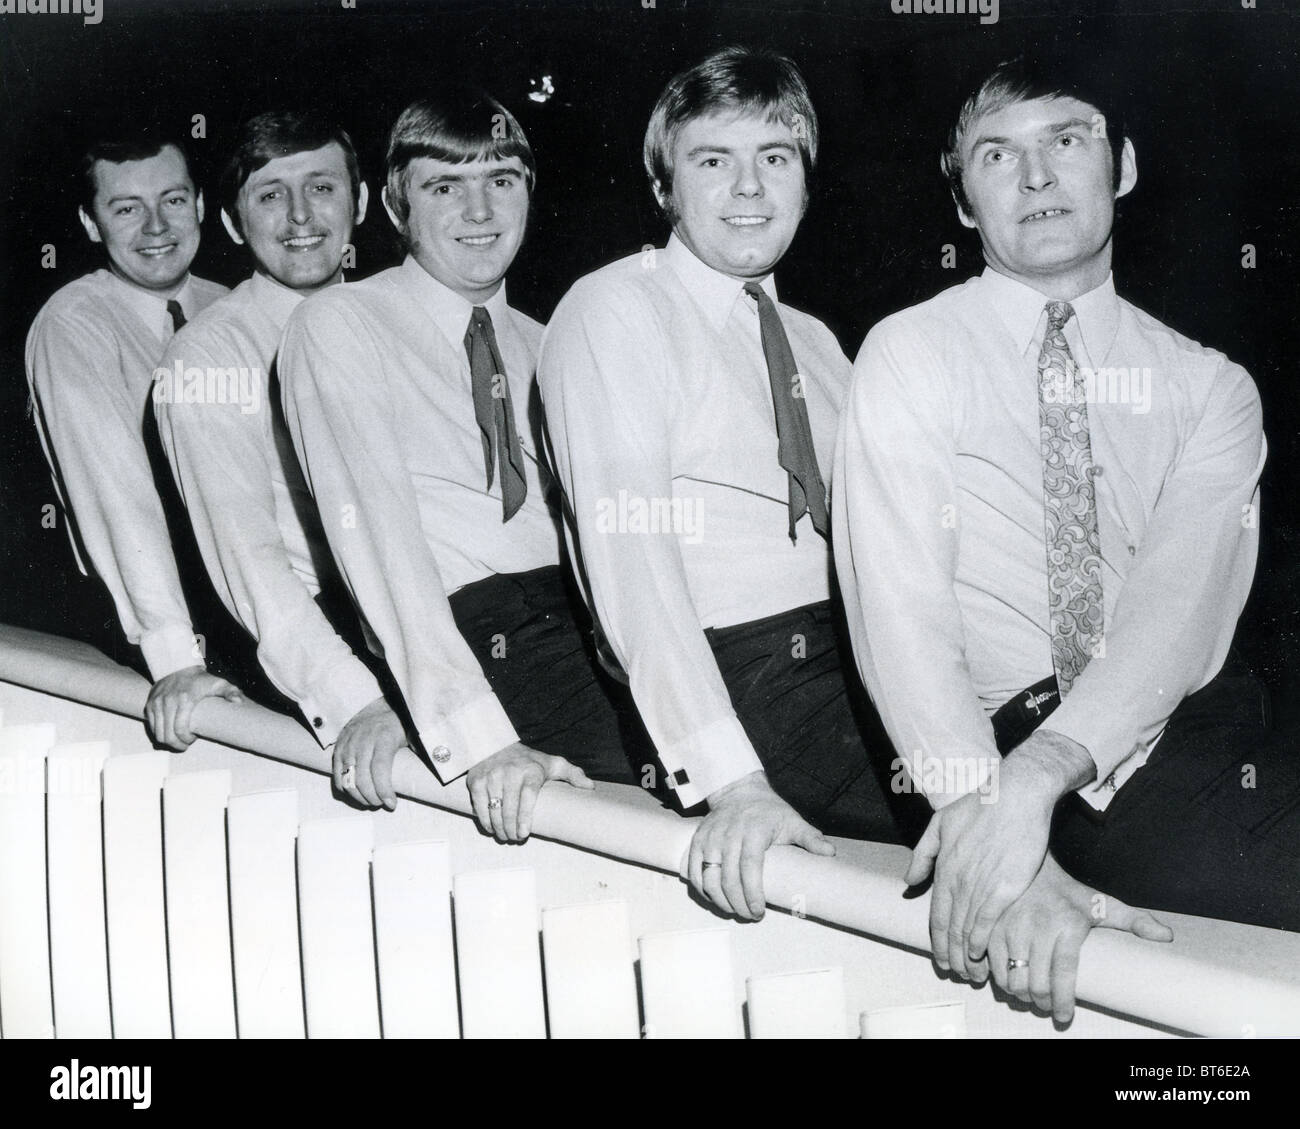 HILLSIDERS  UK pop group in 1969 - Stock Image